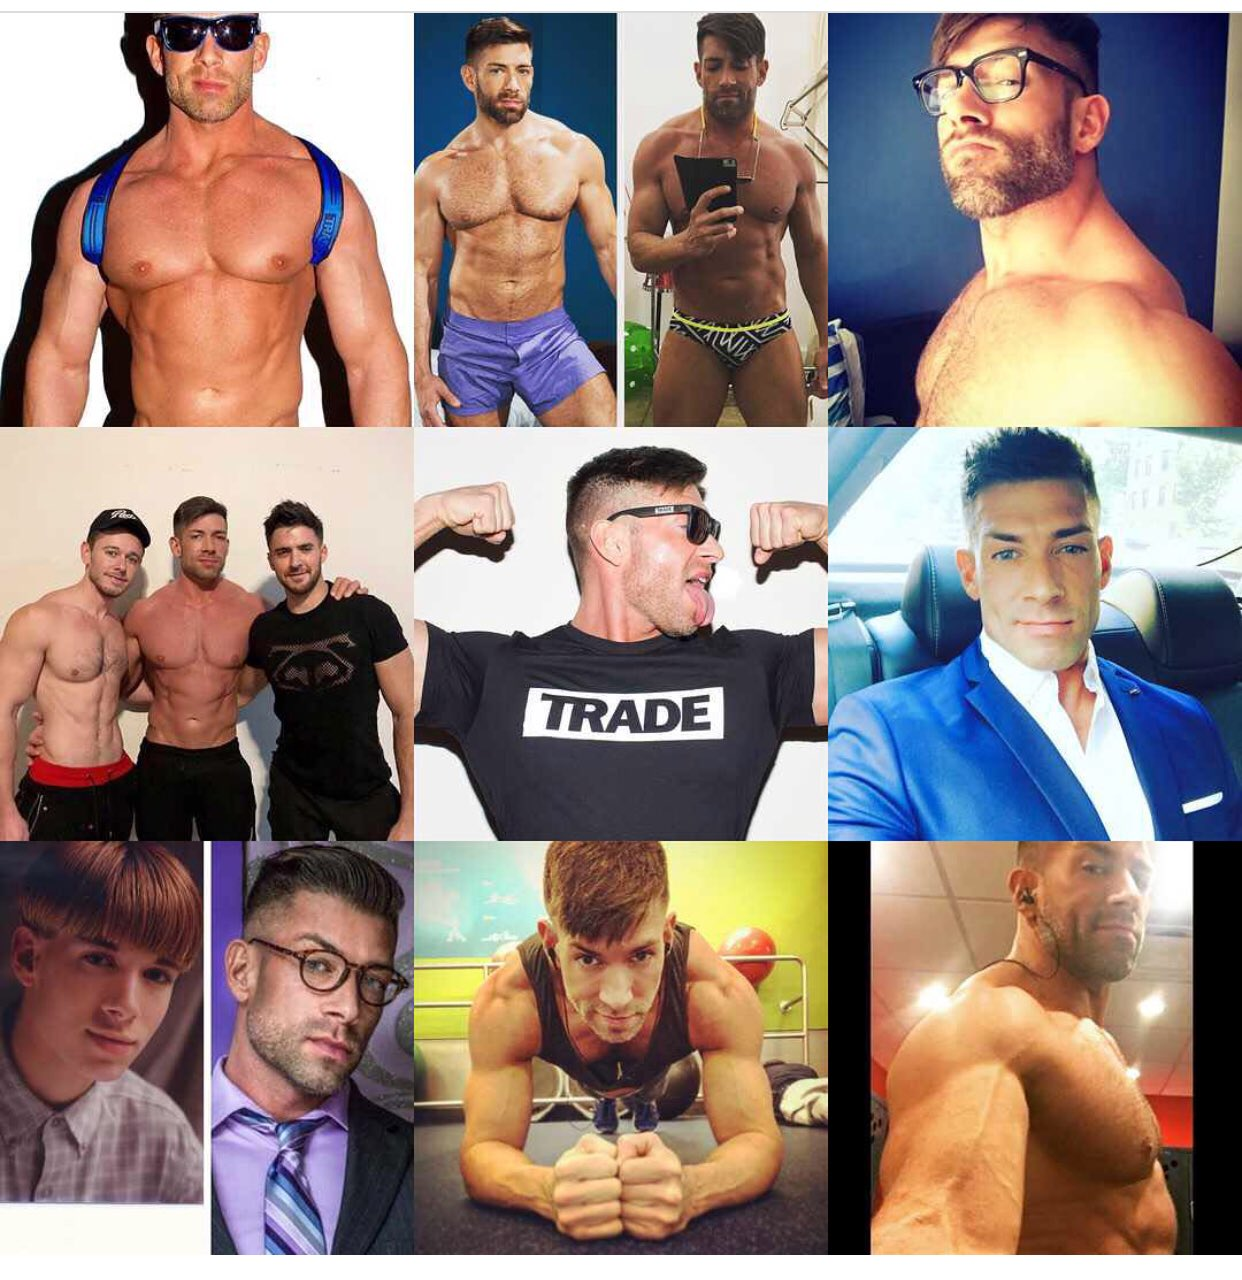 RT @BruceBeckhamXXX: Here's my top 9 from Instagram 2017.  Get into the fleshy goodness. https://t.co/dftV5cO2AR